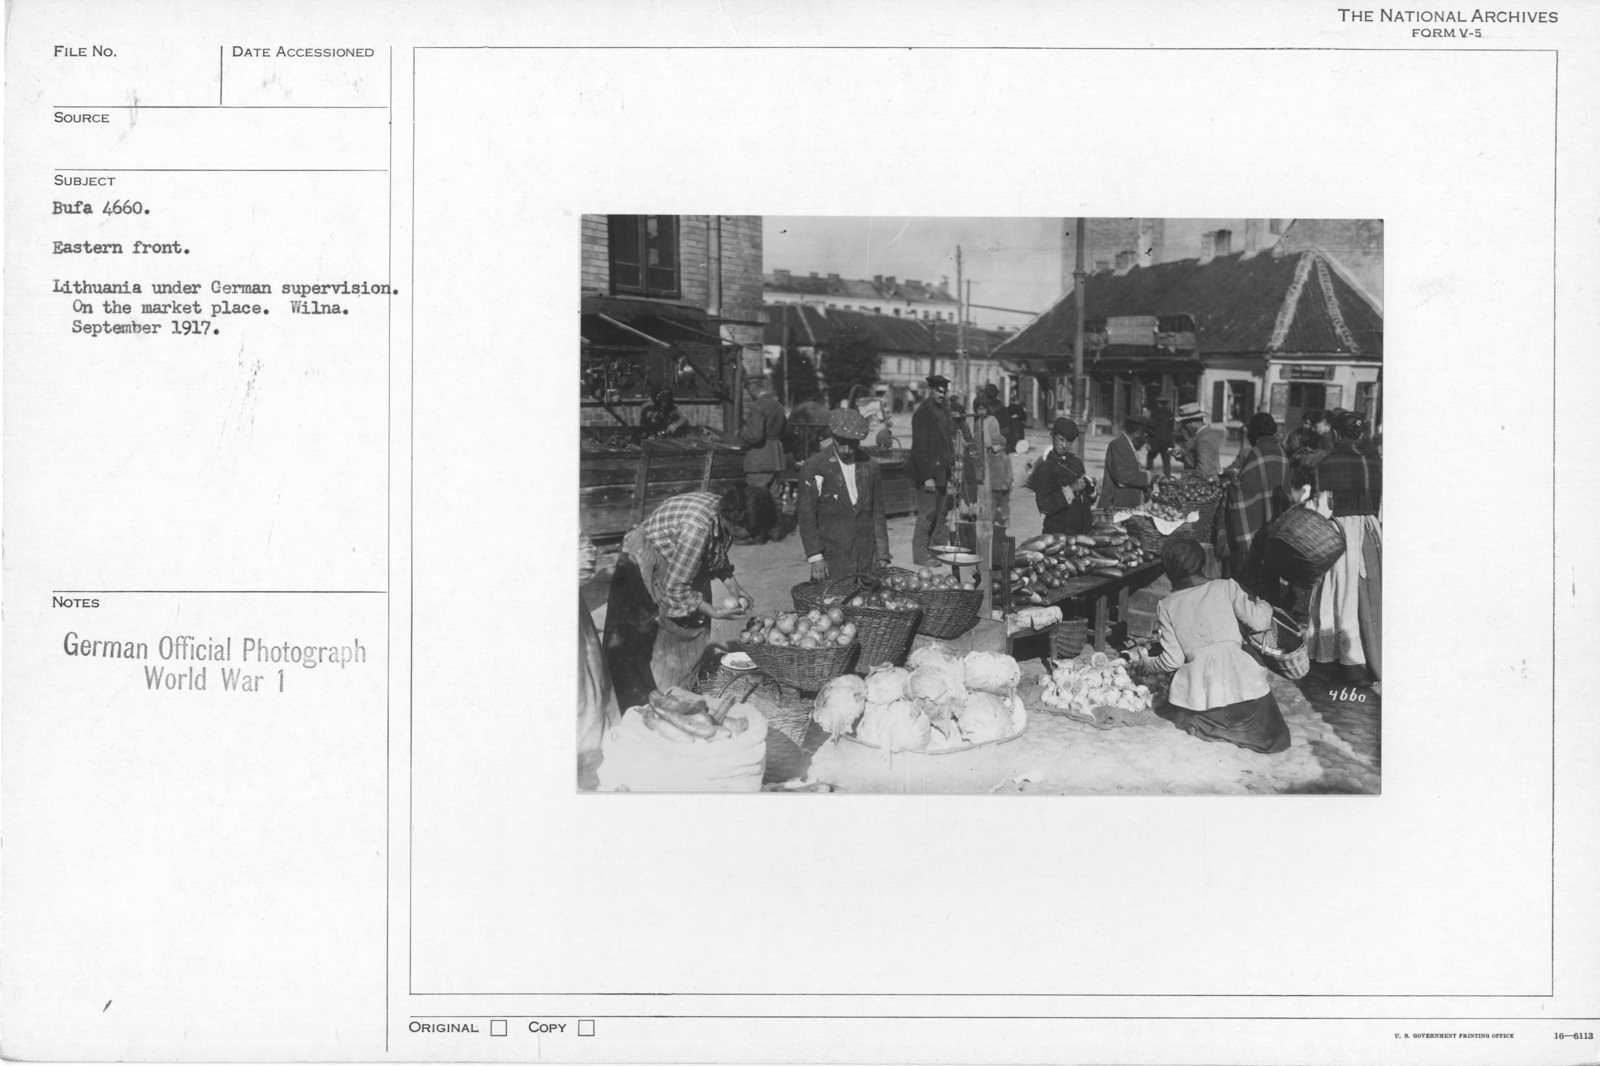 Eastern front. Lithuania under German supervision. On the Market place. Wilna. Spetember 1917